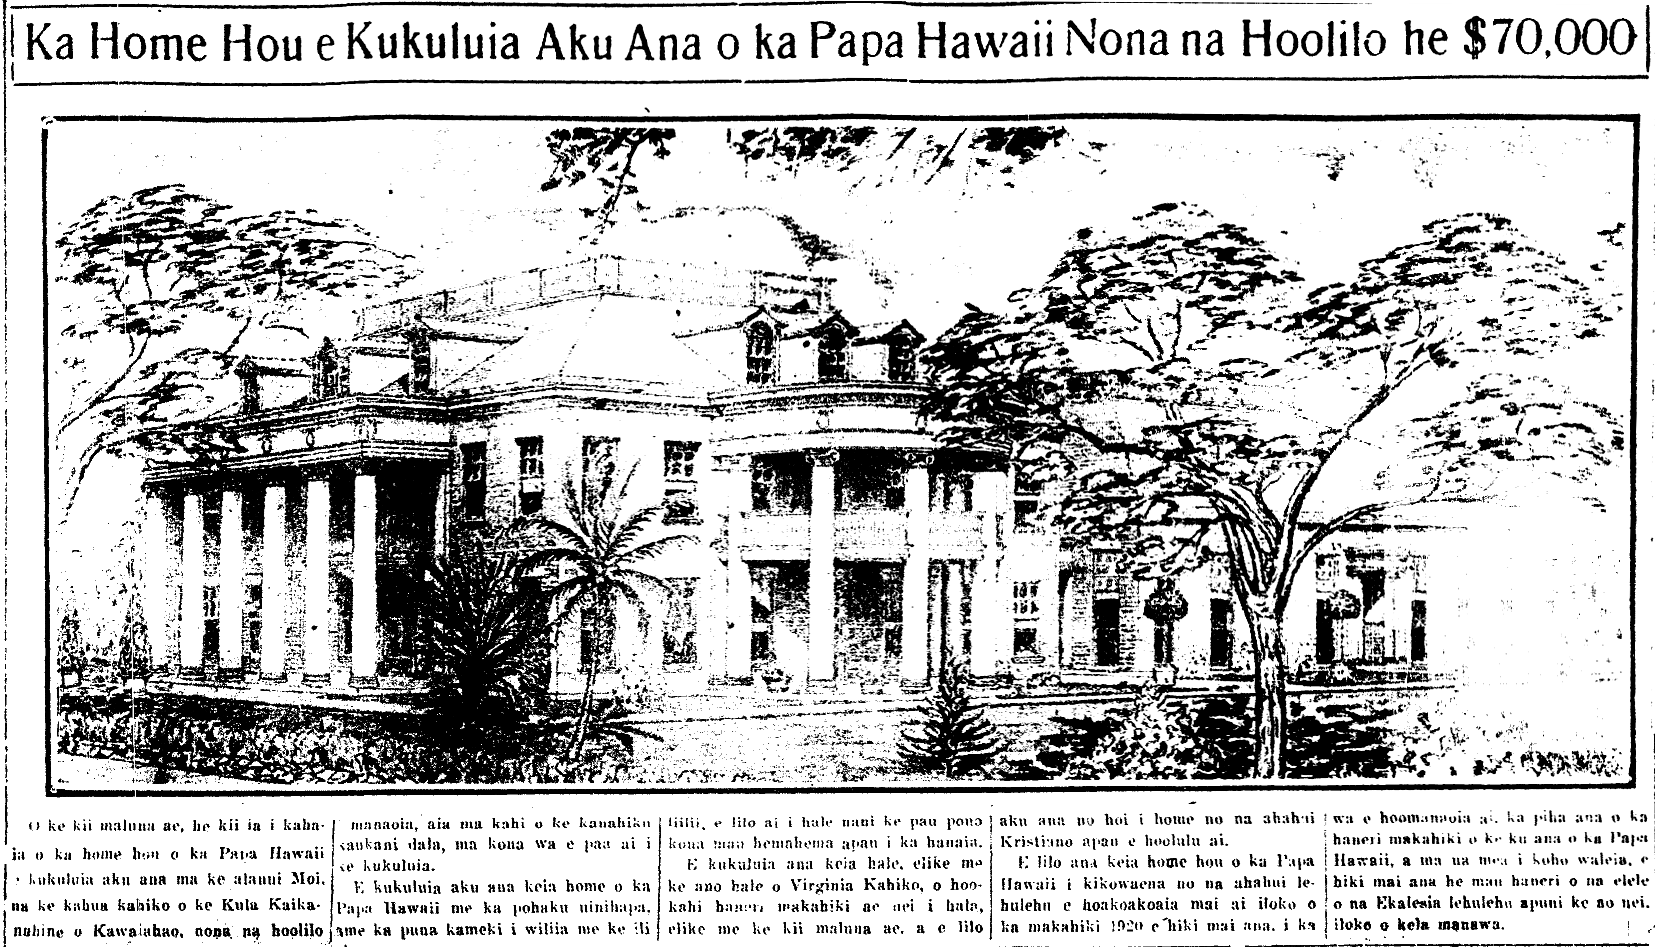 the hawaiian missionaries The missionaries who came to hawaii in the earliest years were a majority from puritan new england, which explains much about their character the missionaries reduced the hawaiian language to written form, enabling the hawaiian people to read and write in their own language.